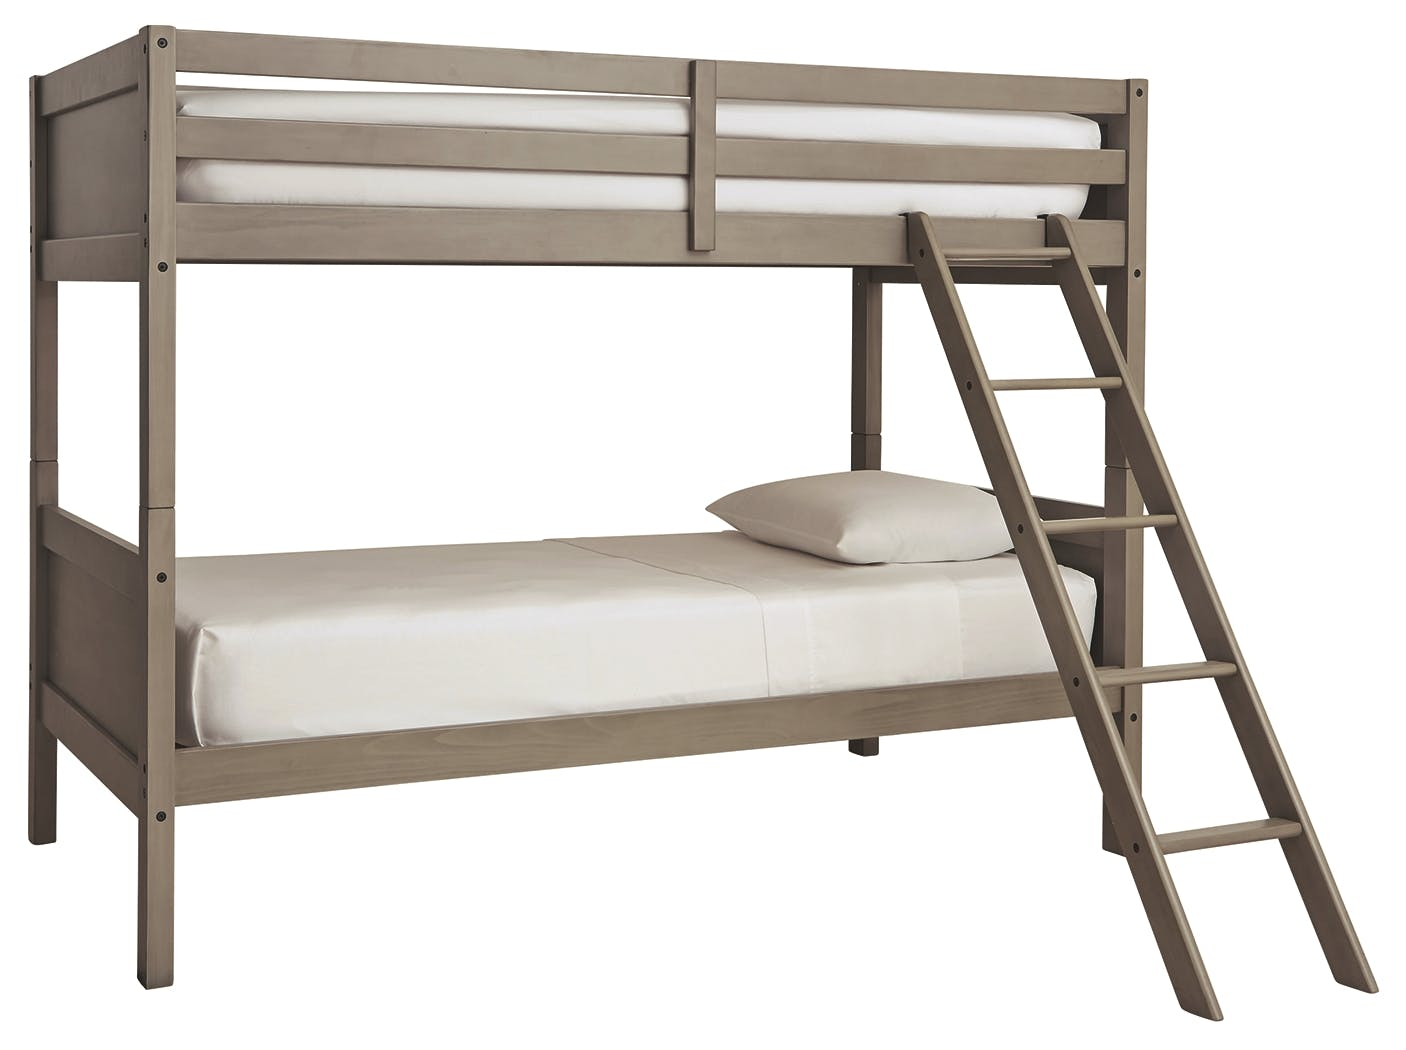 Picture of: Signature Design By Ashley Youth Lettner Twin Twin Bunk Bed With Ladder B733 59 Markson S